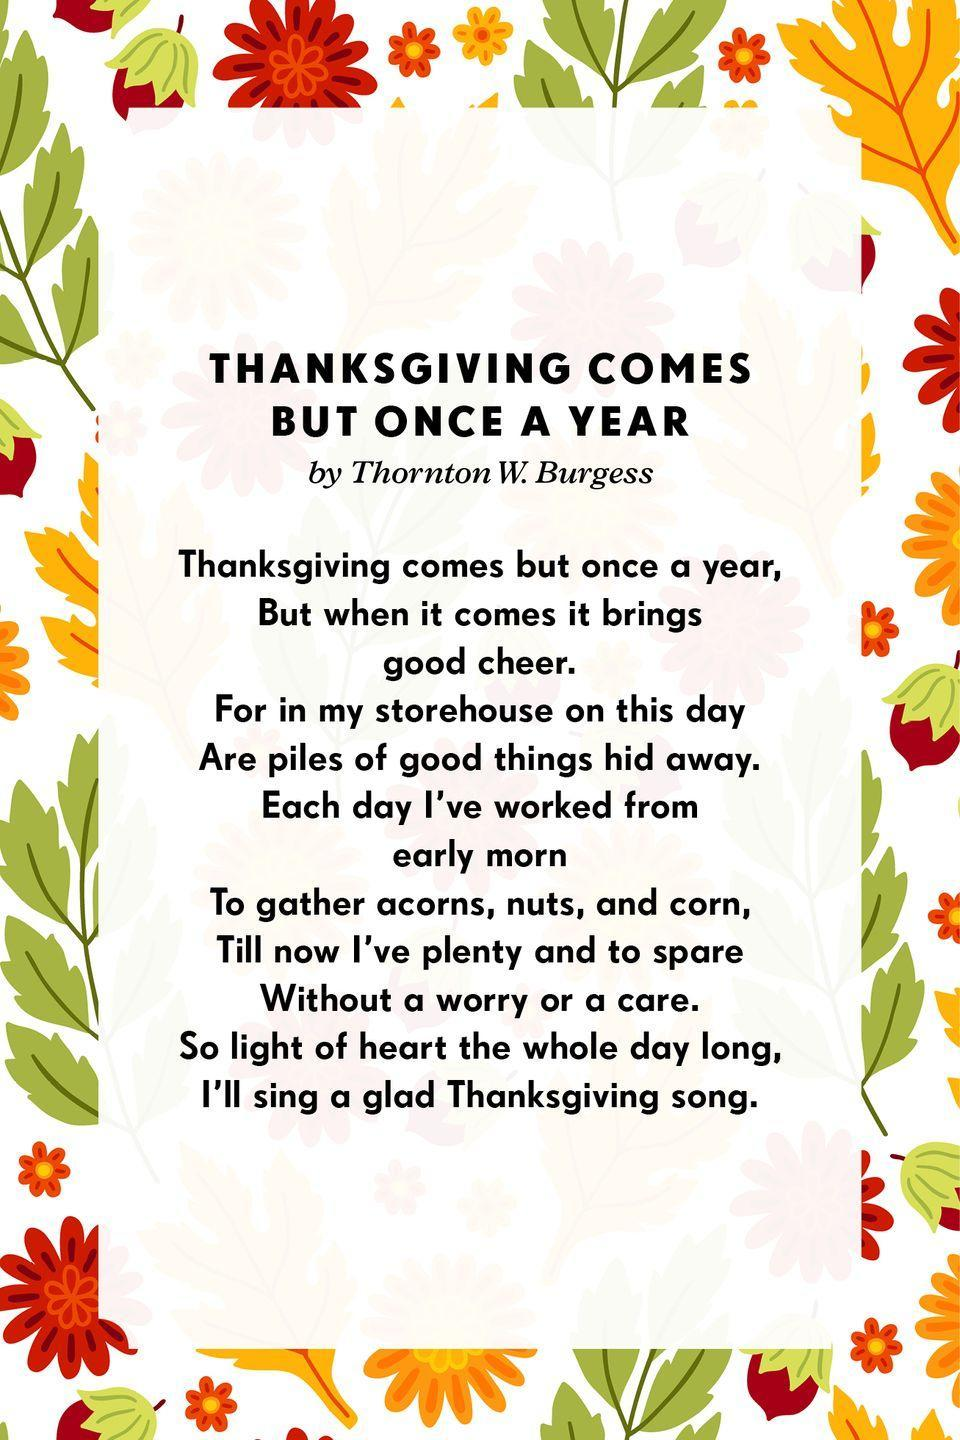 """<p><strong>Thanksgiving Comes But Once a Year</strong></p><p>Thanksgiving comes but once a year,<br>But when it comes it brings good cheer.<br>For in my storehouse on this day<br>Are piles of good things hid away.<br>Each day I've worked from early morn<br>To gather acorns, nuts, and corn,<br>Till now I've plenty and to spare<br>Without a worry or a care.<br>So light of heart the whole day long,<br>I'll sing a glad <a href=""""https://www.poemofquotes.com/articles/category/holiday-articles/thanksgiving-articles"""" rel=""""nofollow noopener"""" target=""""_blank"""" data-ylk=""""slk:Thanksgiving"""" class=""""link rapid-noclick-resp"""">Thanksgiving</a> song</p>"""